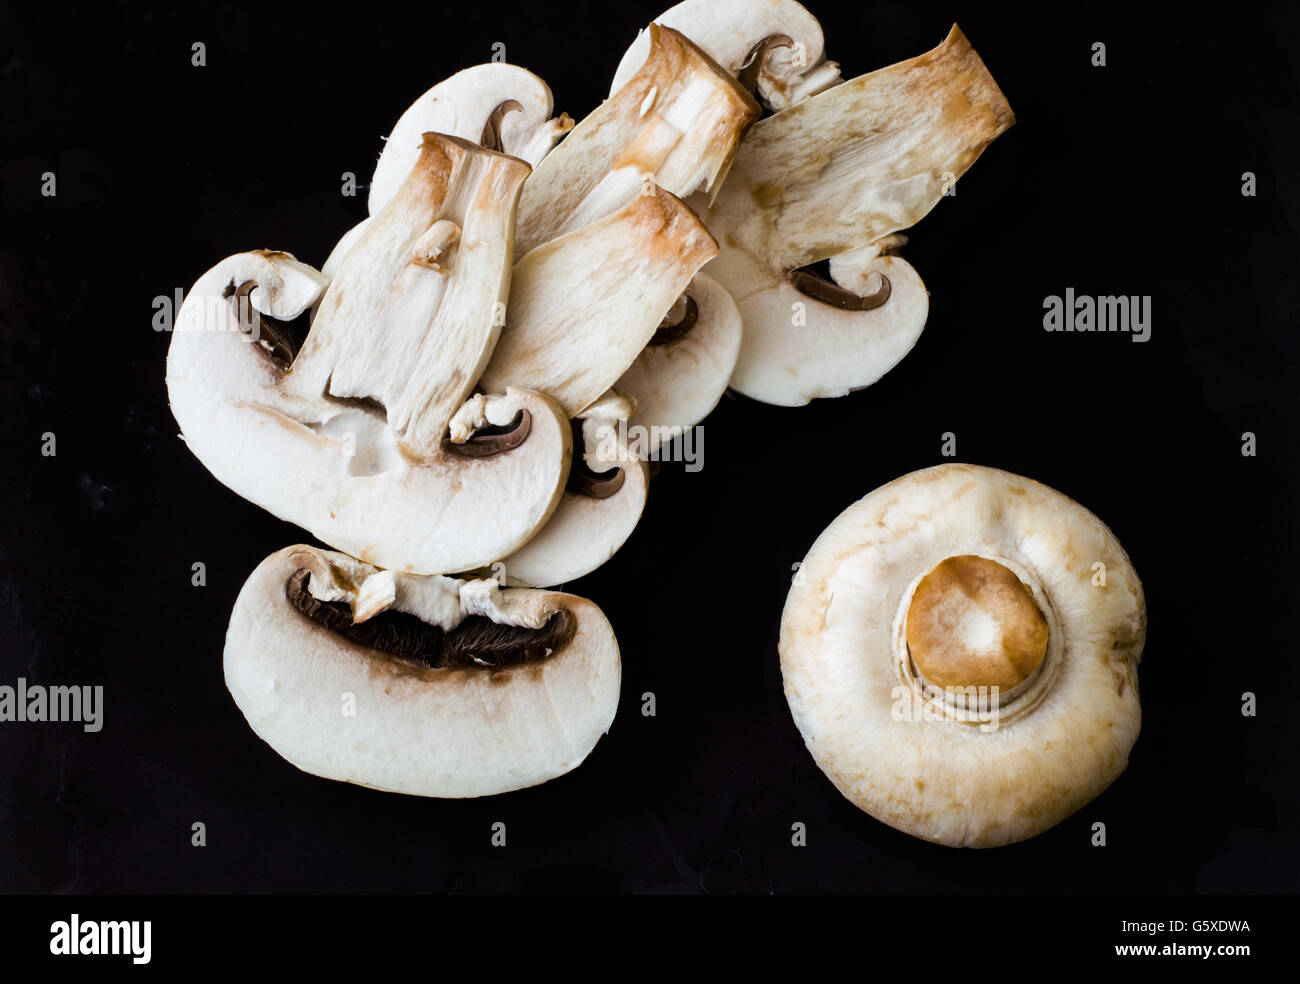 Top View of Sliced Fresh Mushrooms Before Cooking - Stock Image